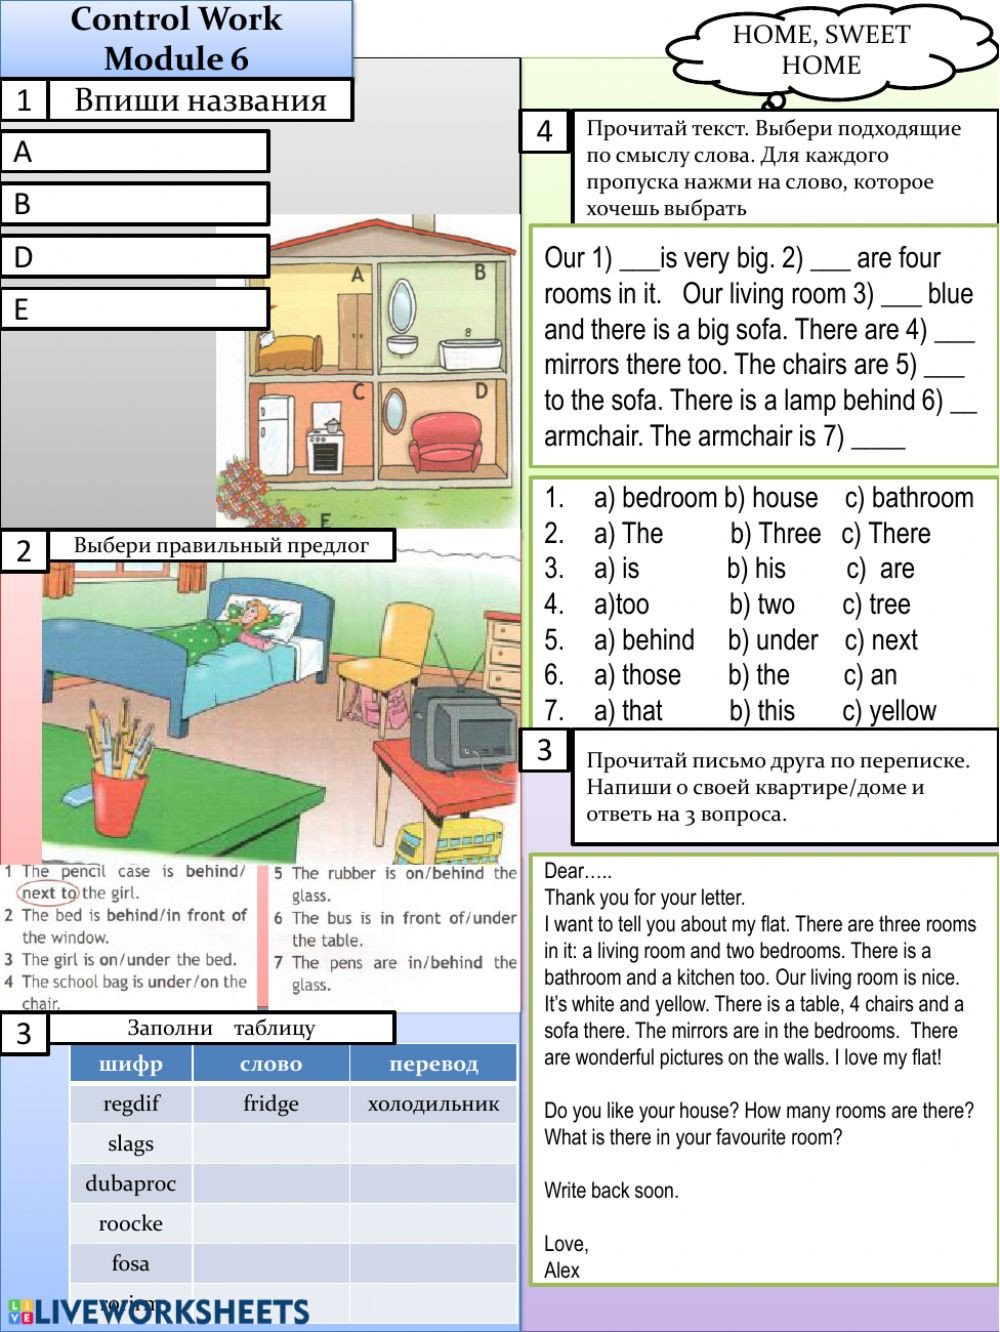 Pen Control Worksheets My House Control Work Interactive Worksheet